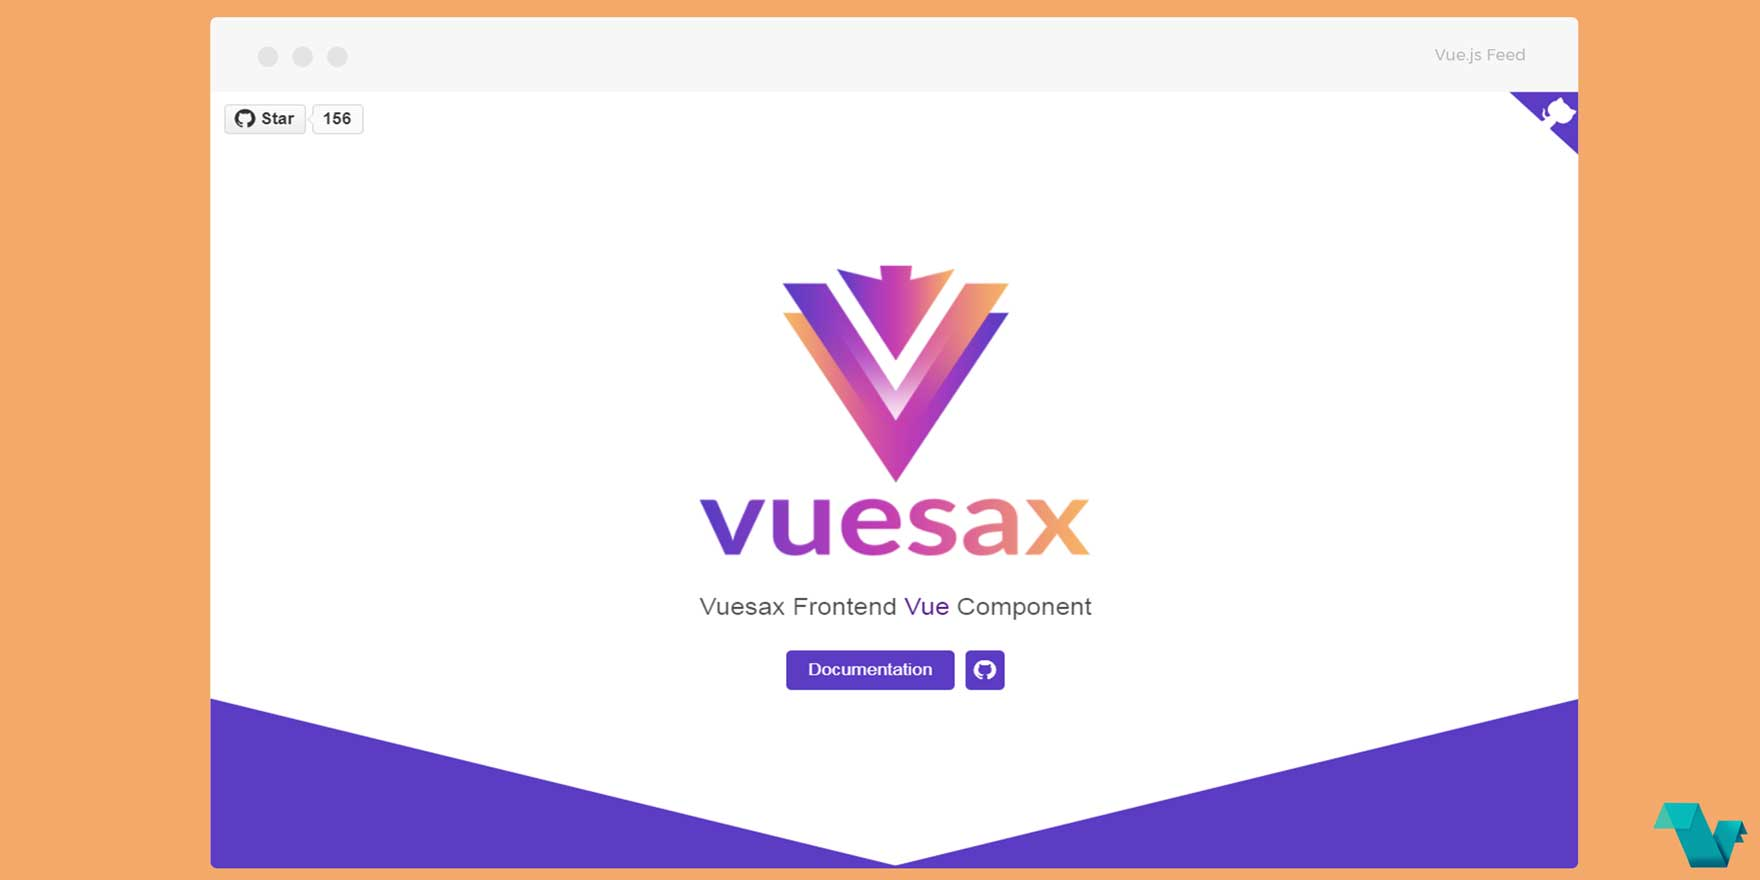 Vuesax: A new library for Vue js components - Vue js Feed